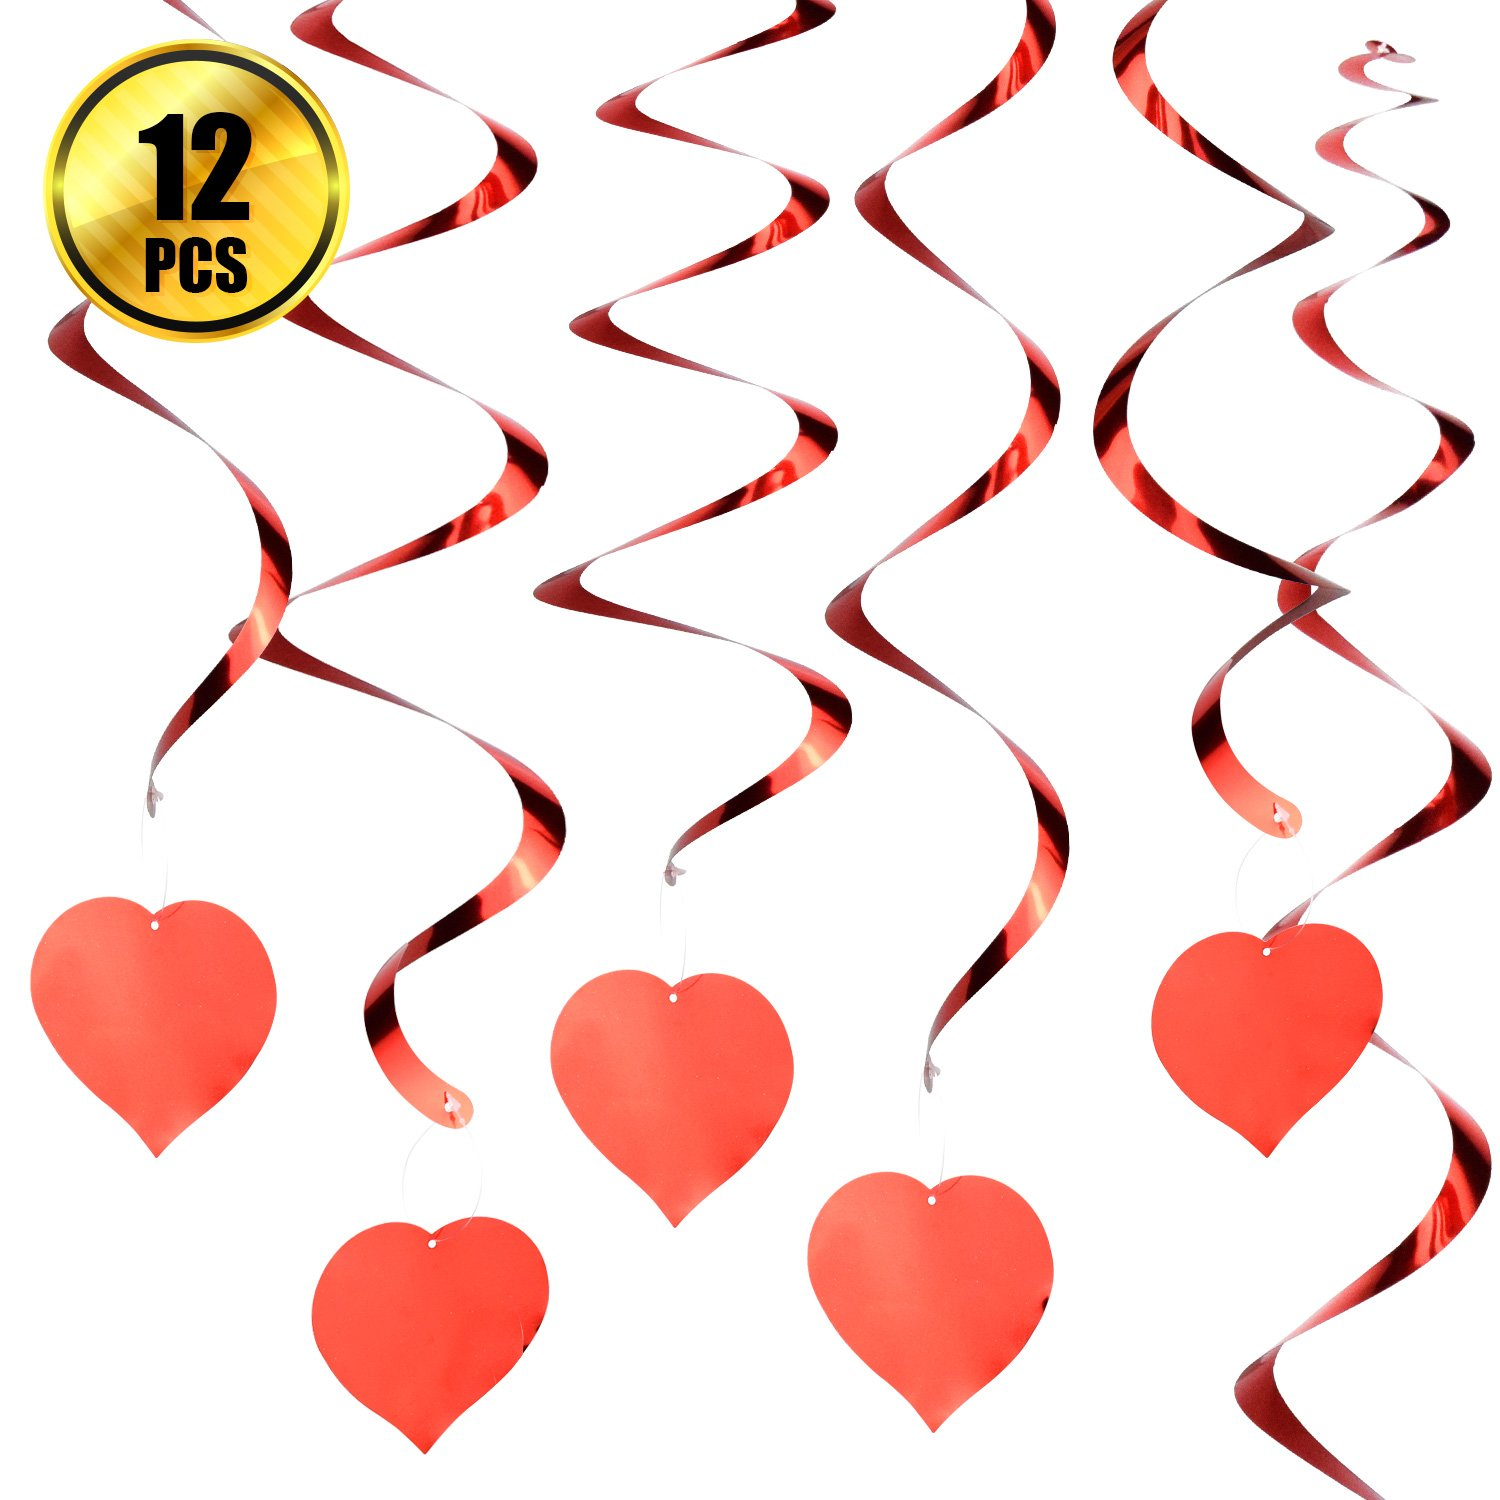 WXJ13 12 Pieces Red Foil Swirl Decorations Valentines Decorations Hanging Party Supplies for Wedding Shower Birthday Party Table Decor